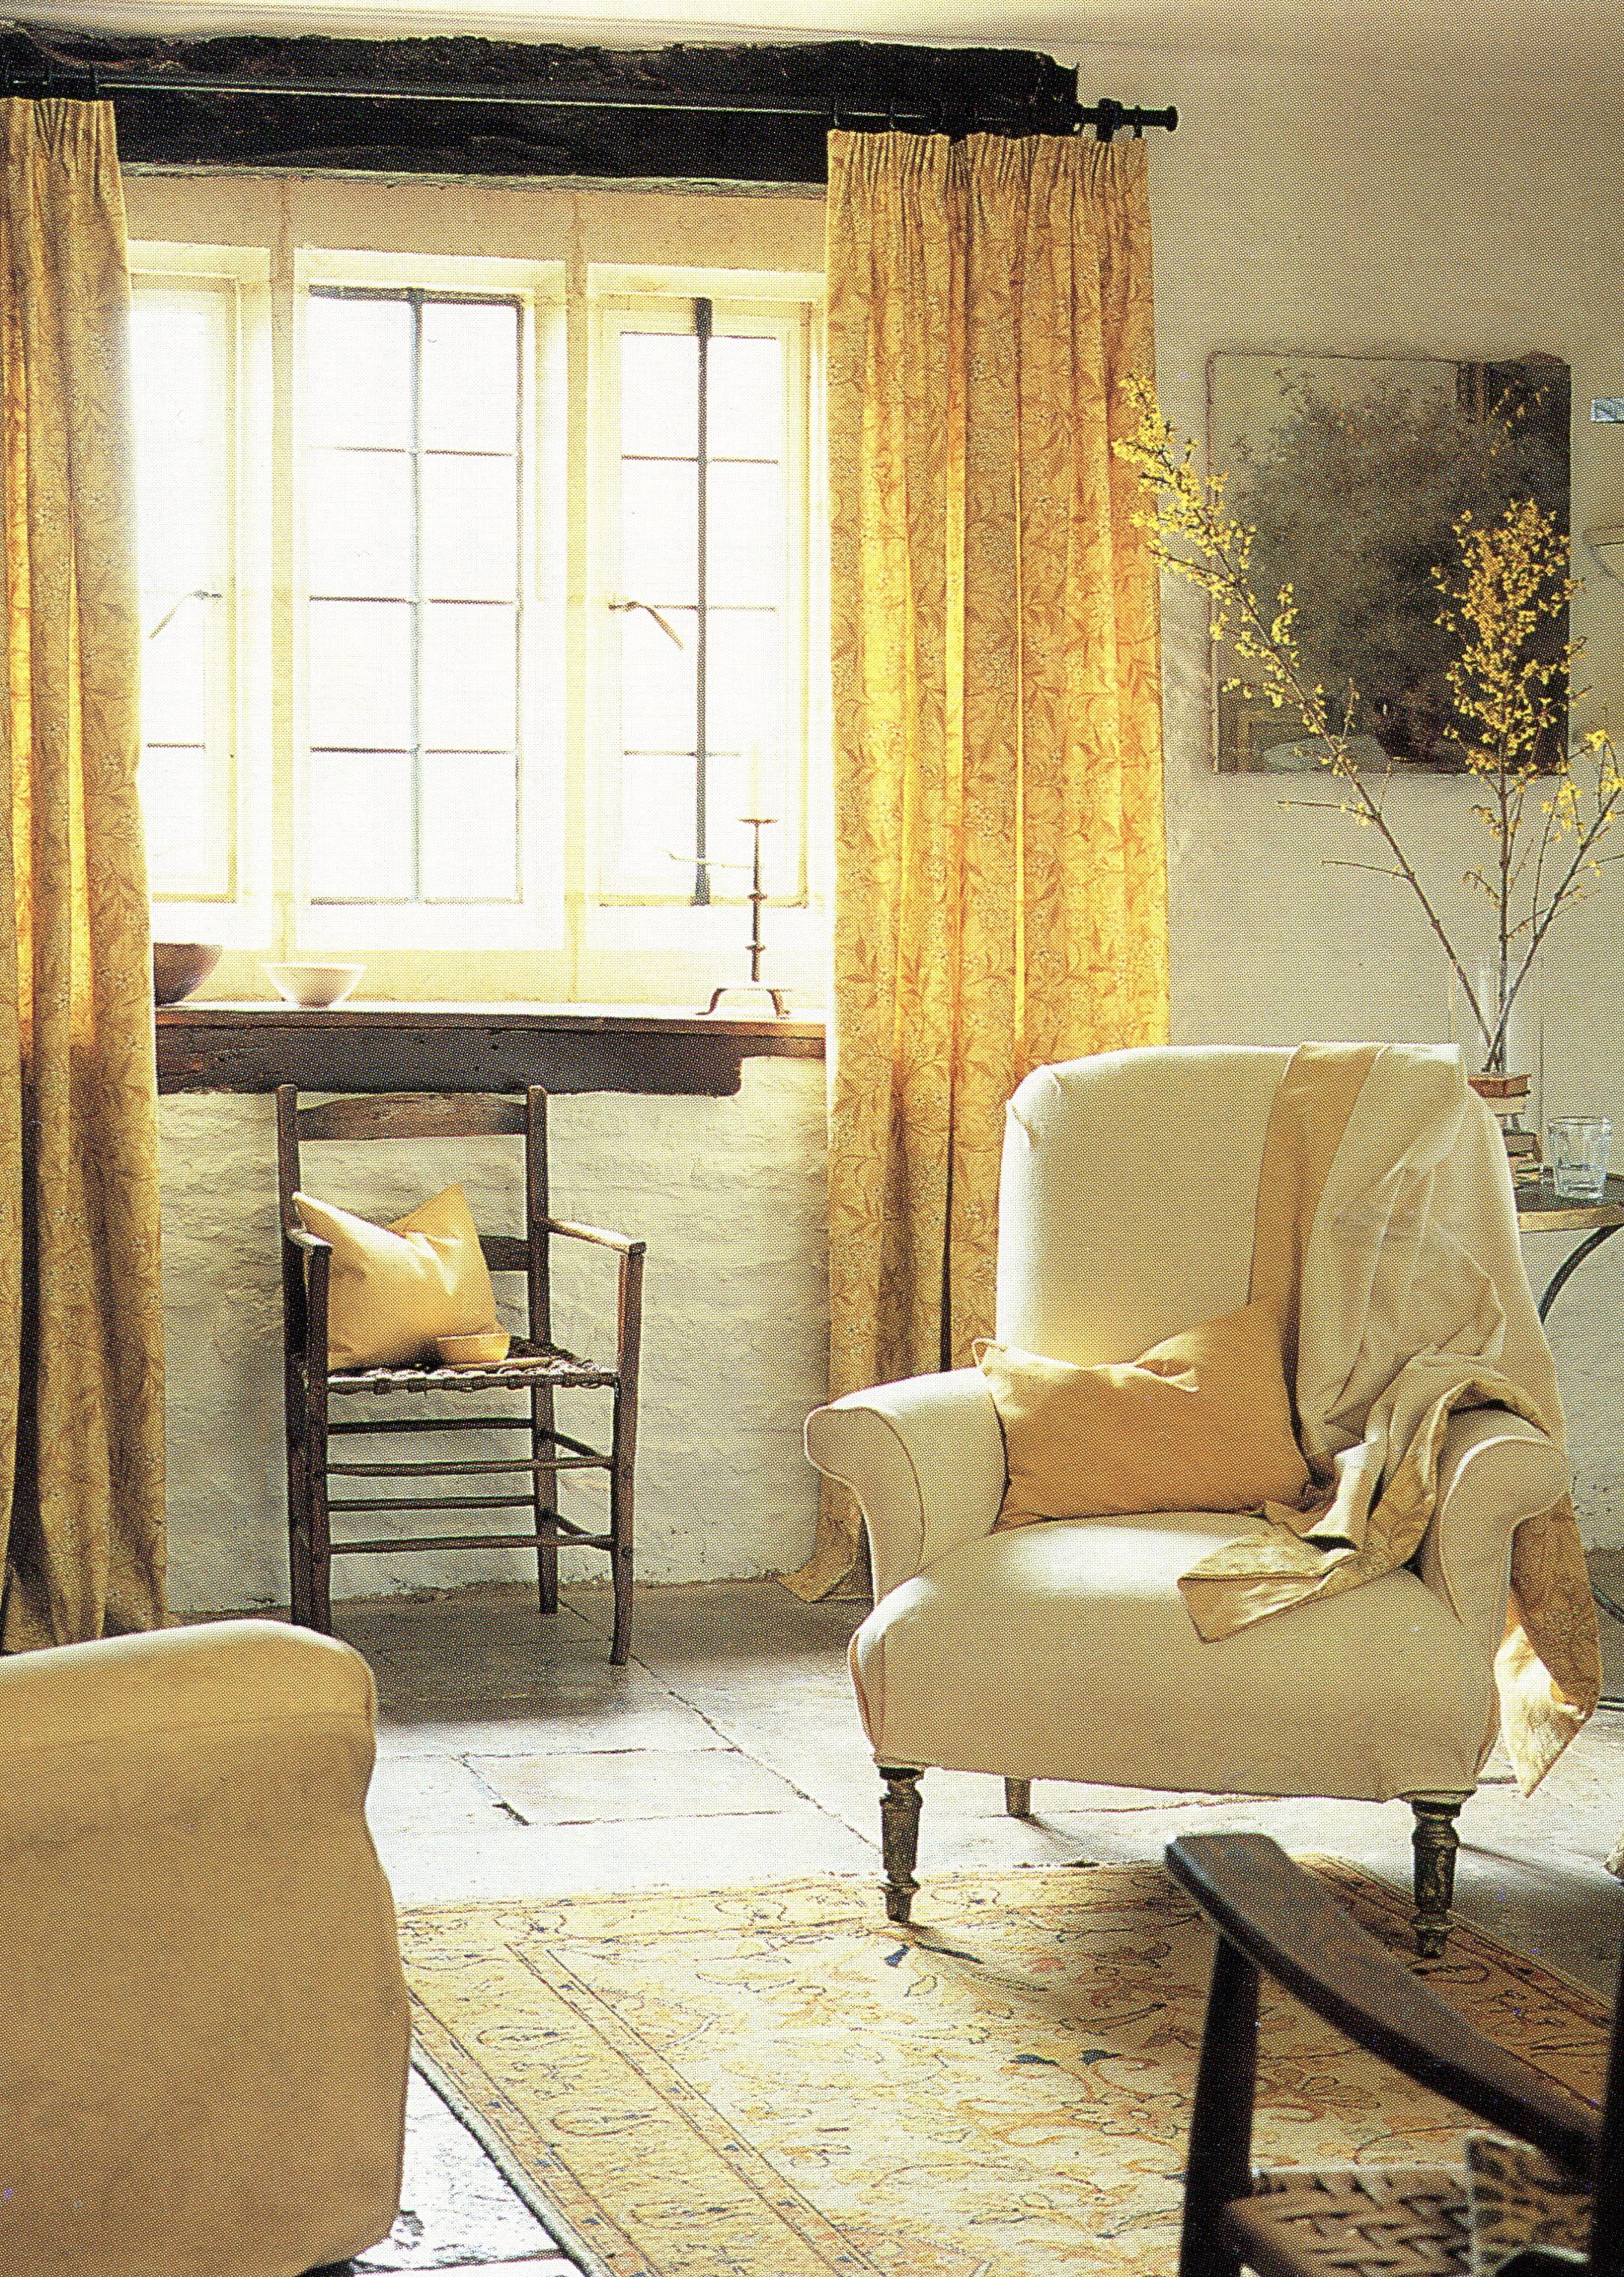 Simple, cottagey interior with drapes from a thin iron pole and rug ...